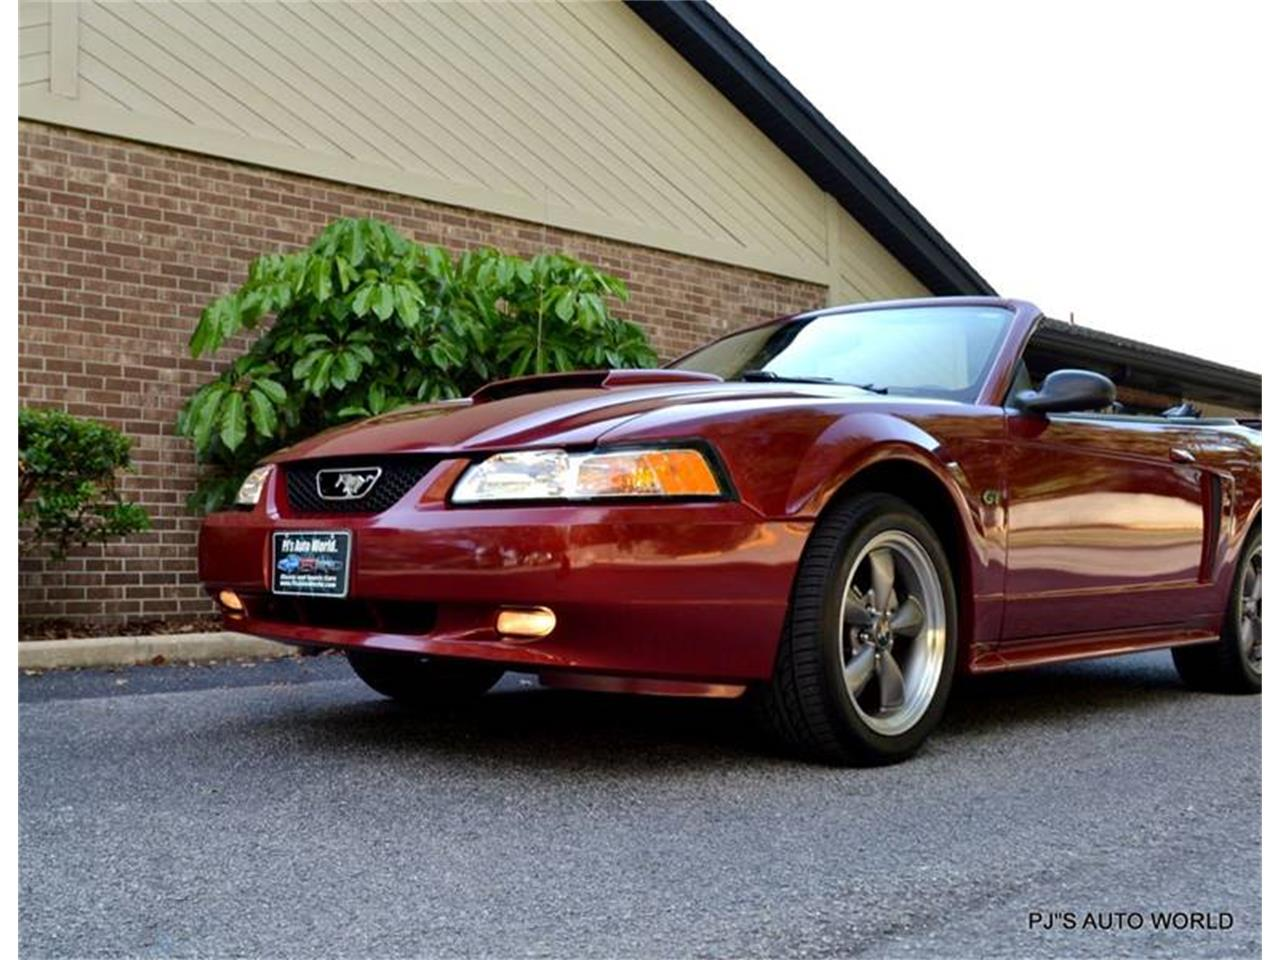 Large Picture of 2003 Mustang - $10,900.00 Offered by PJ's Auto World - LEYO